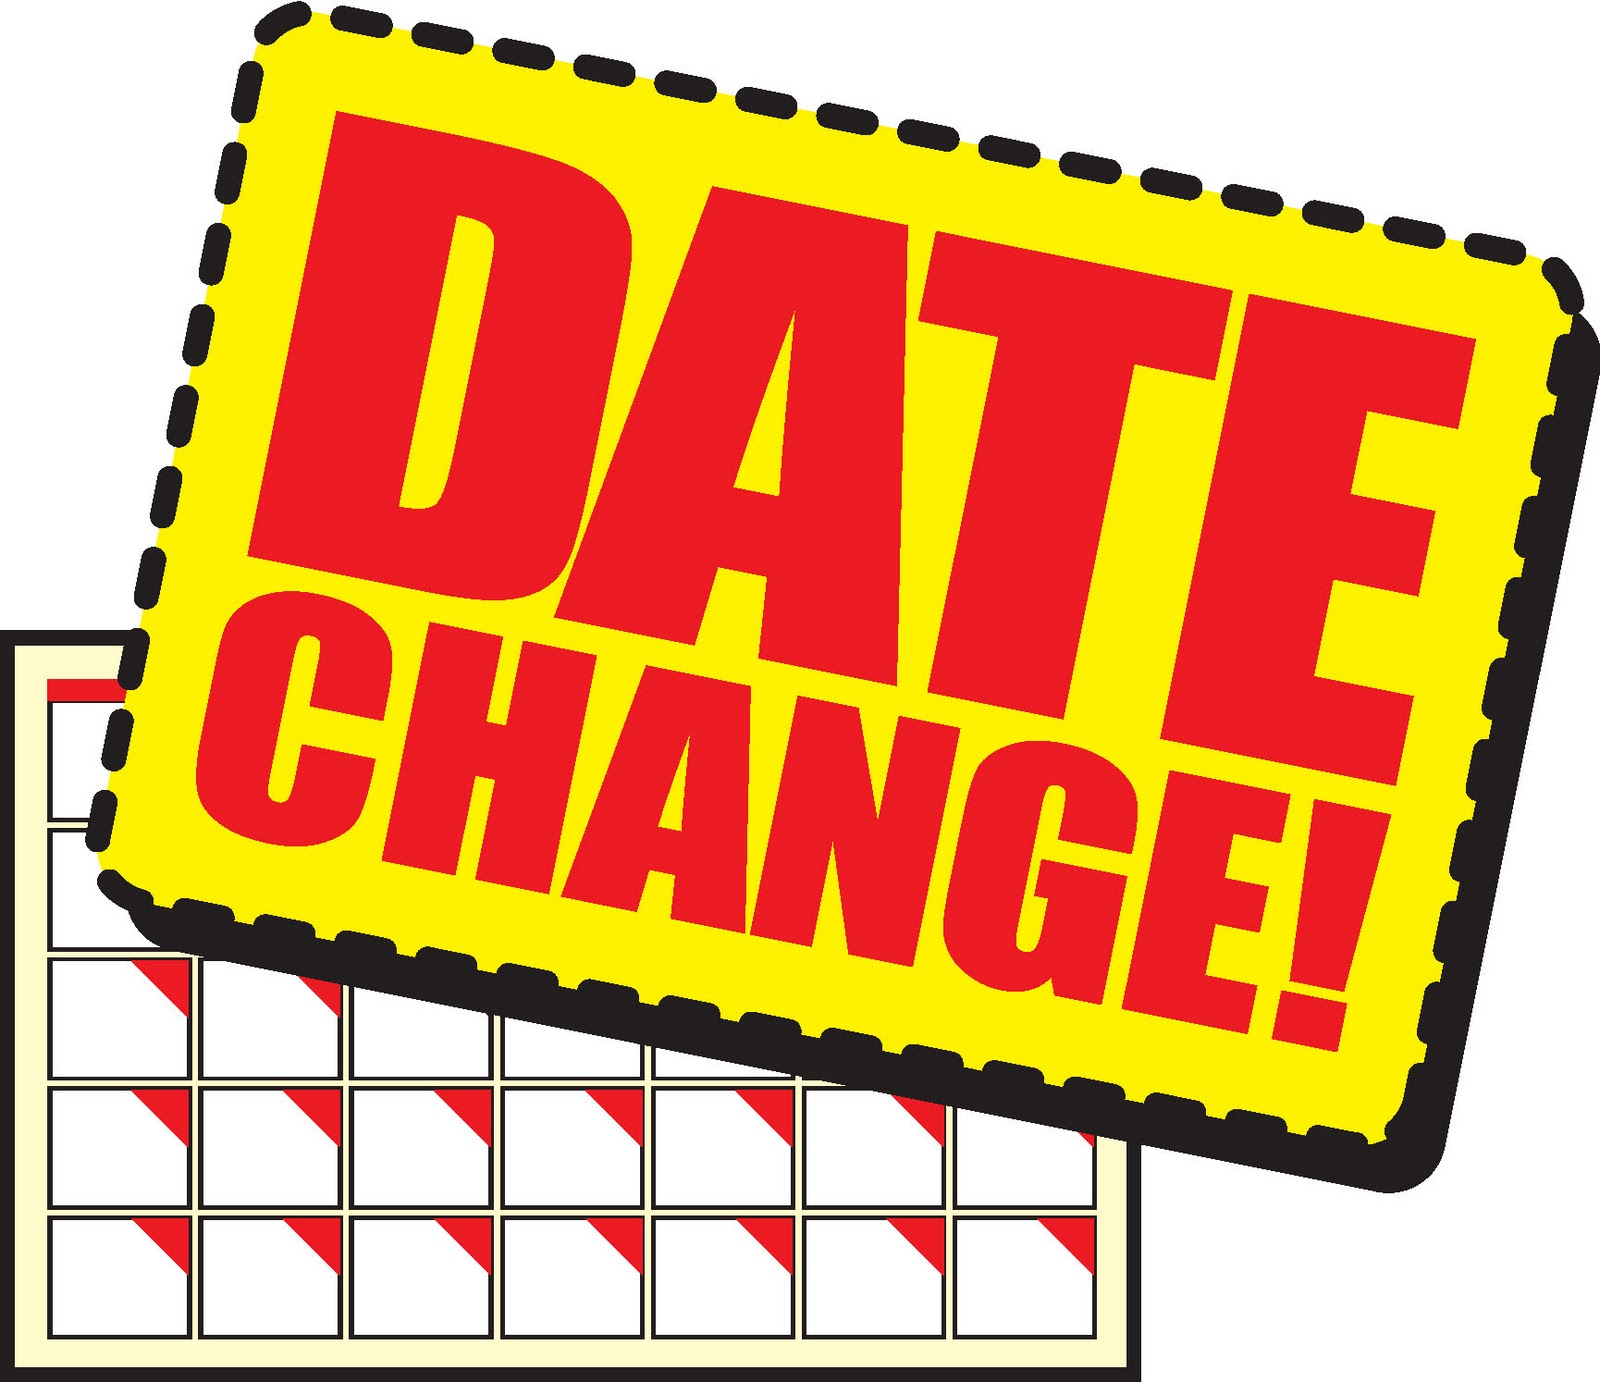 Date change clipart.